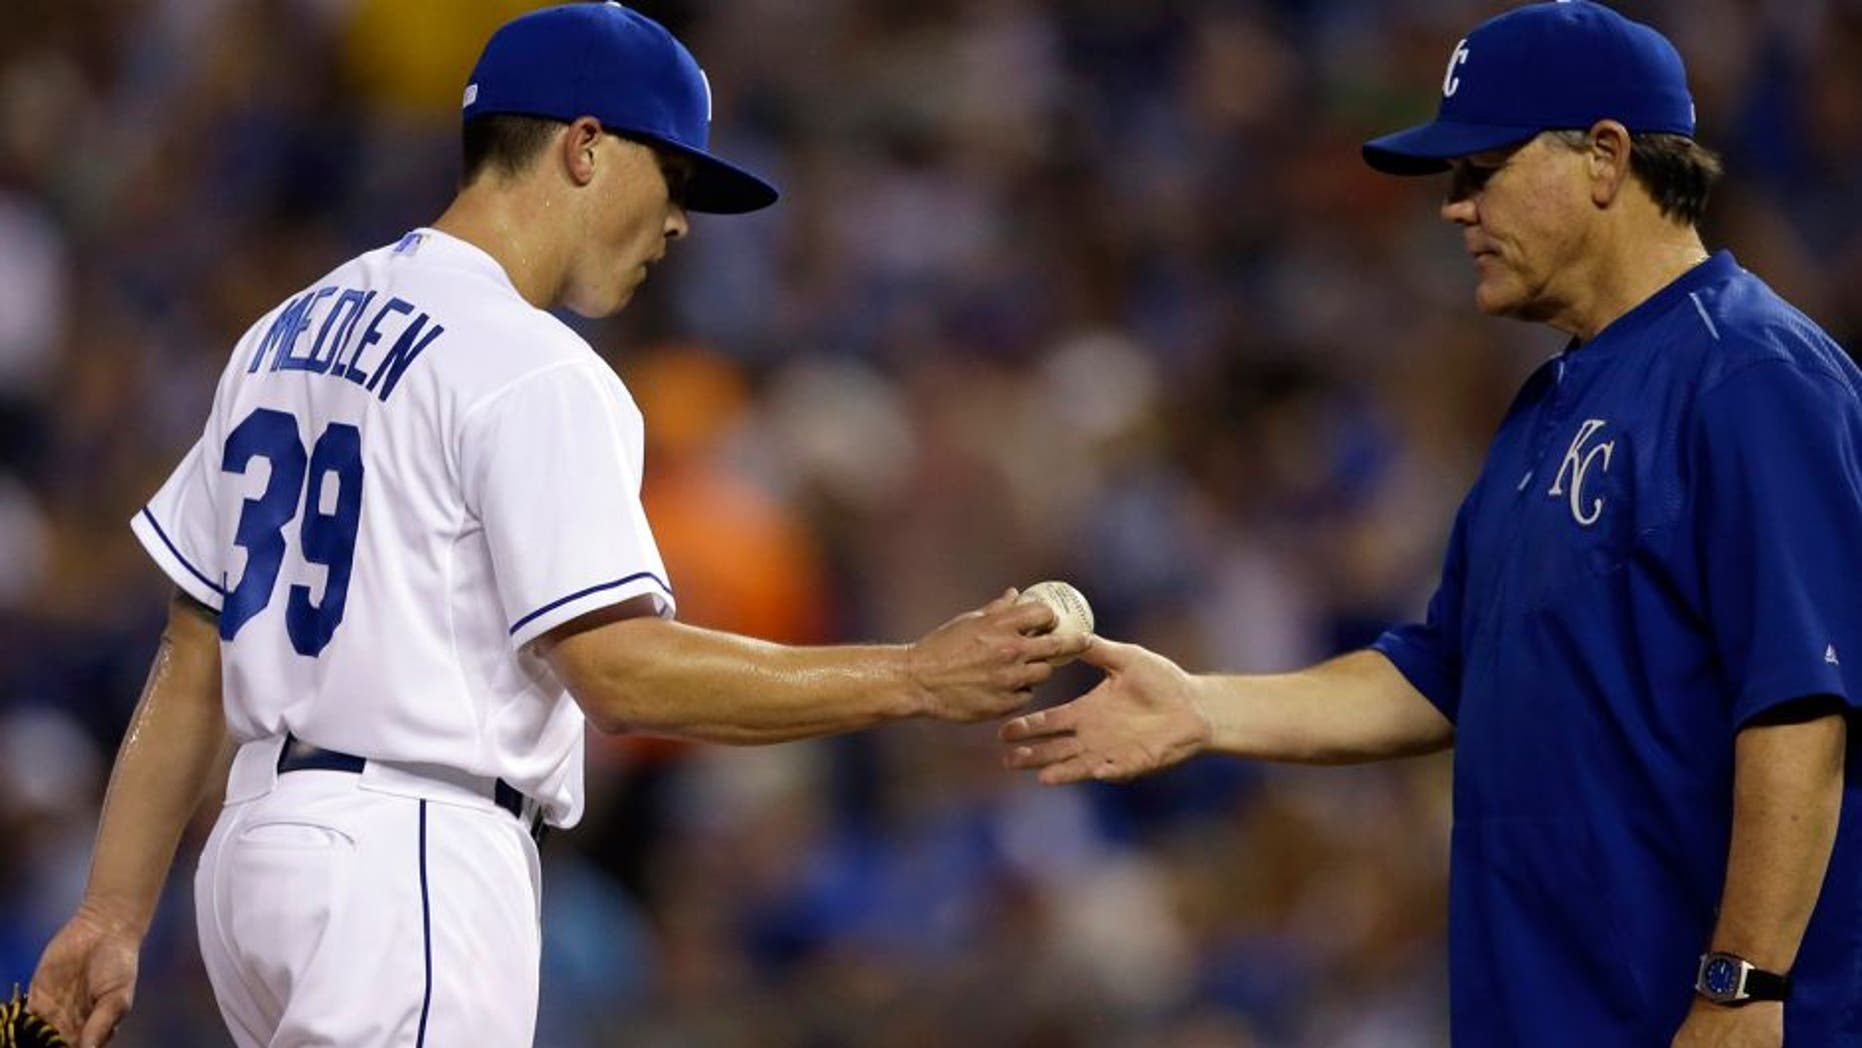 Kansas City Royals starting pitcher Kris Medlen (39) hands the ball to manager Ned Yost, right, during the sixth inning of a baseball game against the Chicago White Sox at Kauffman Stadium in Kansas City, Mo., Friday, Sept. 4, 2015. (AP Photo/Orlin Wagner)